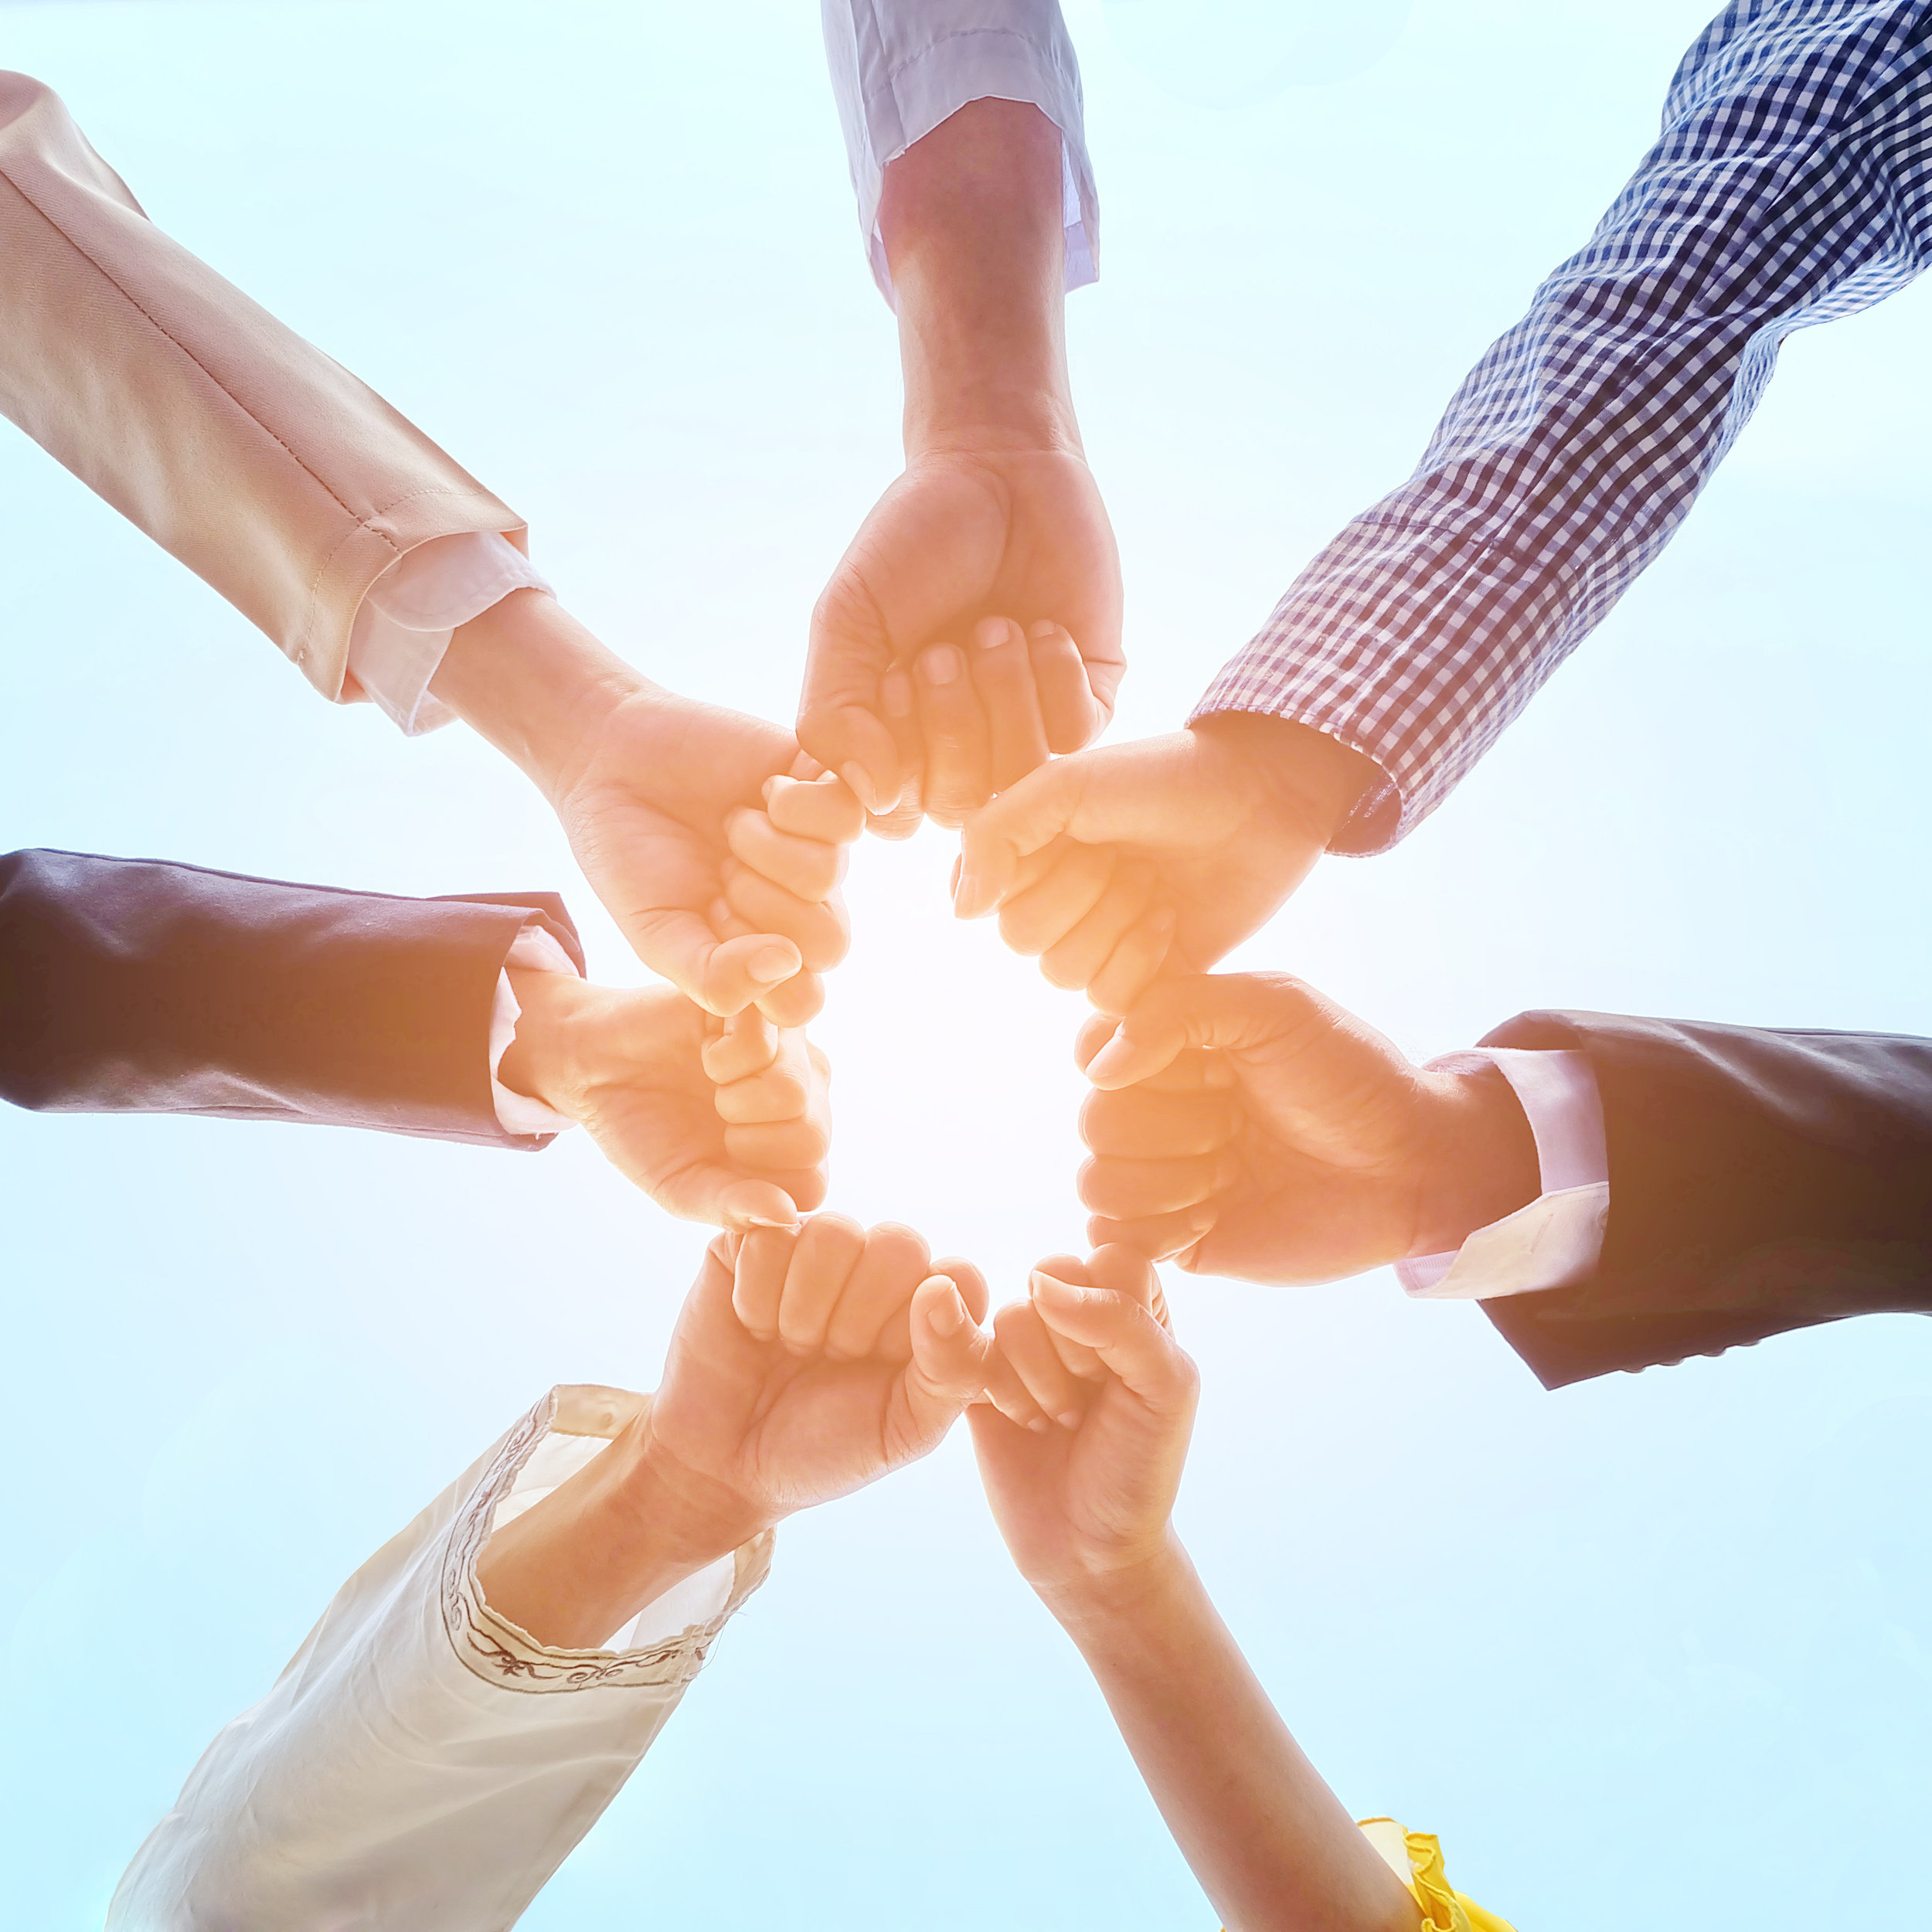 stock-photo-business-people-hands-as-symbol-of-their-partnership-and-strong-teamwork-540627958.jpg